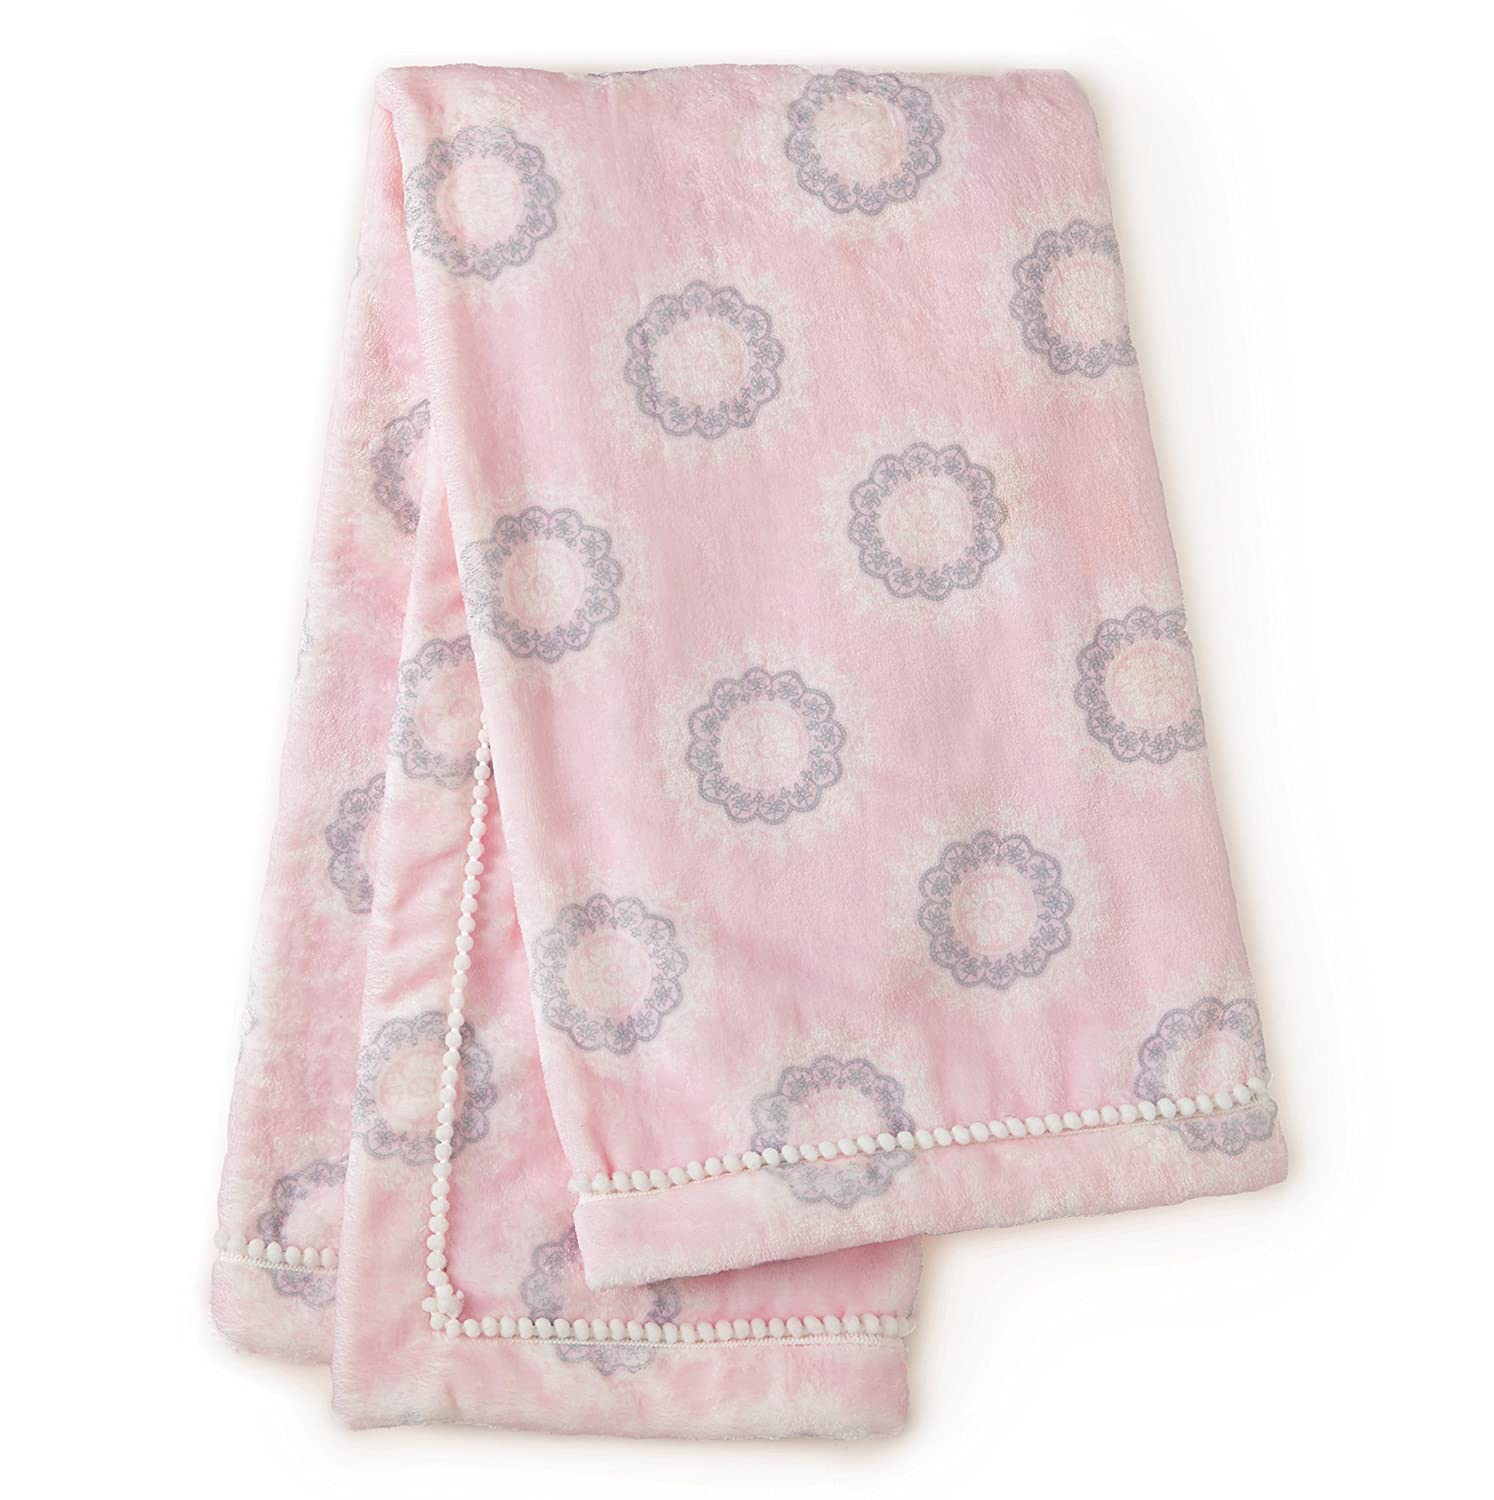 Levtex Baby Willow Medallion Blanket - Pink